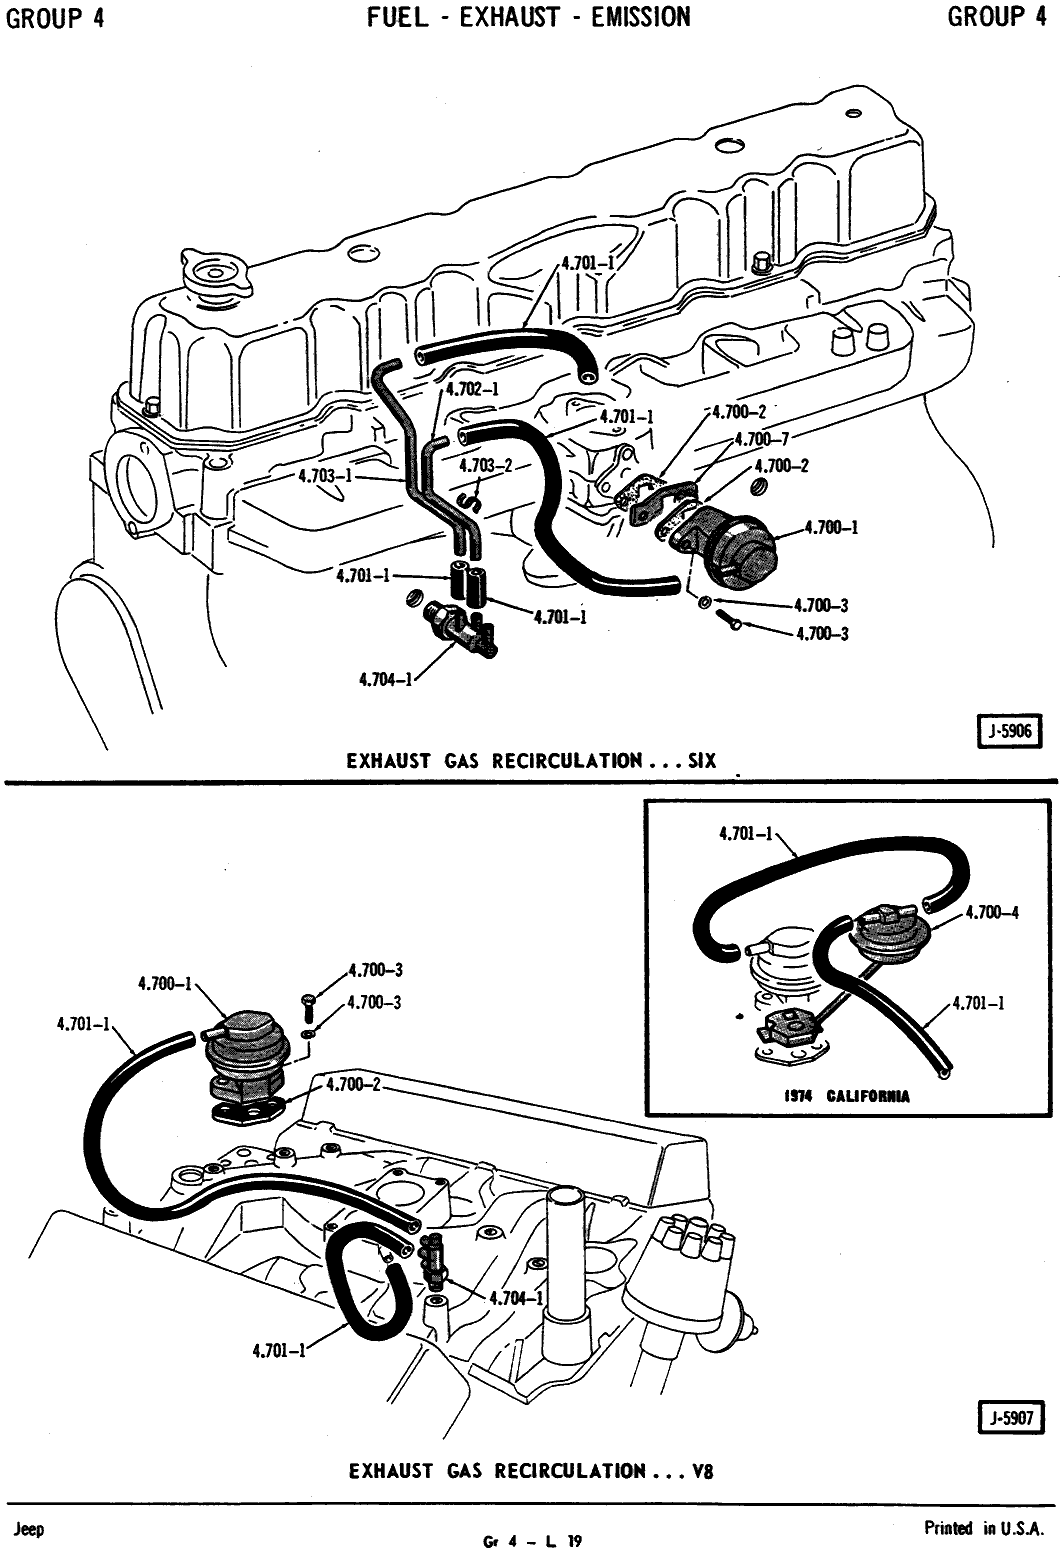 2014 Jeep Wrangler Automatic Transmission Diagram Html on Jeep Transmission Parts Diagram